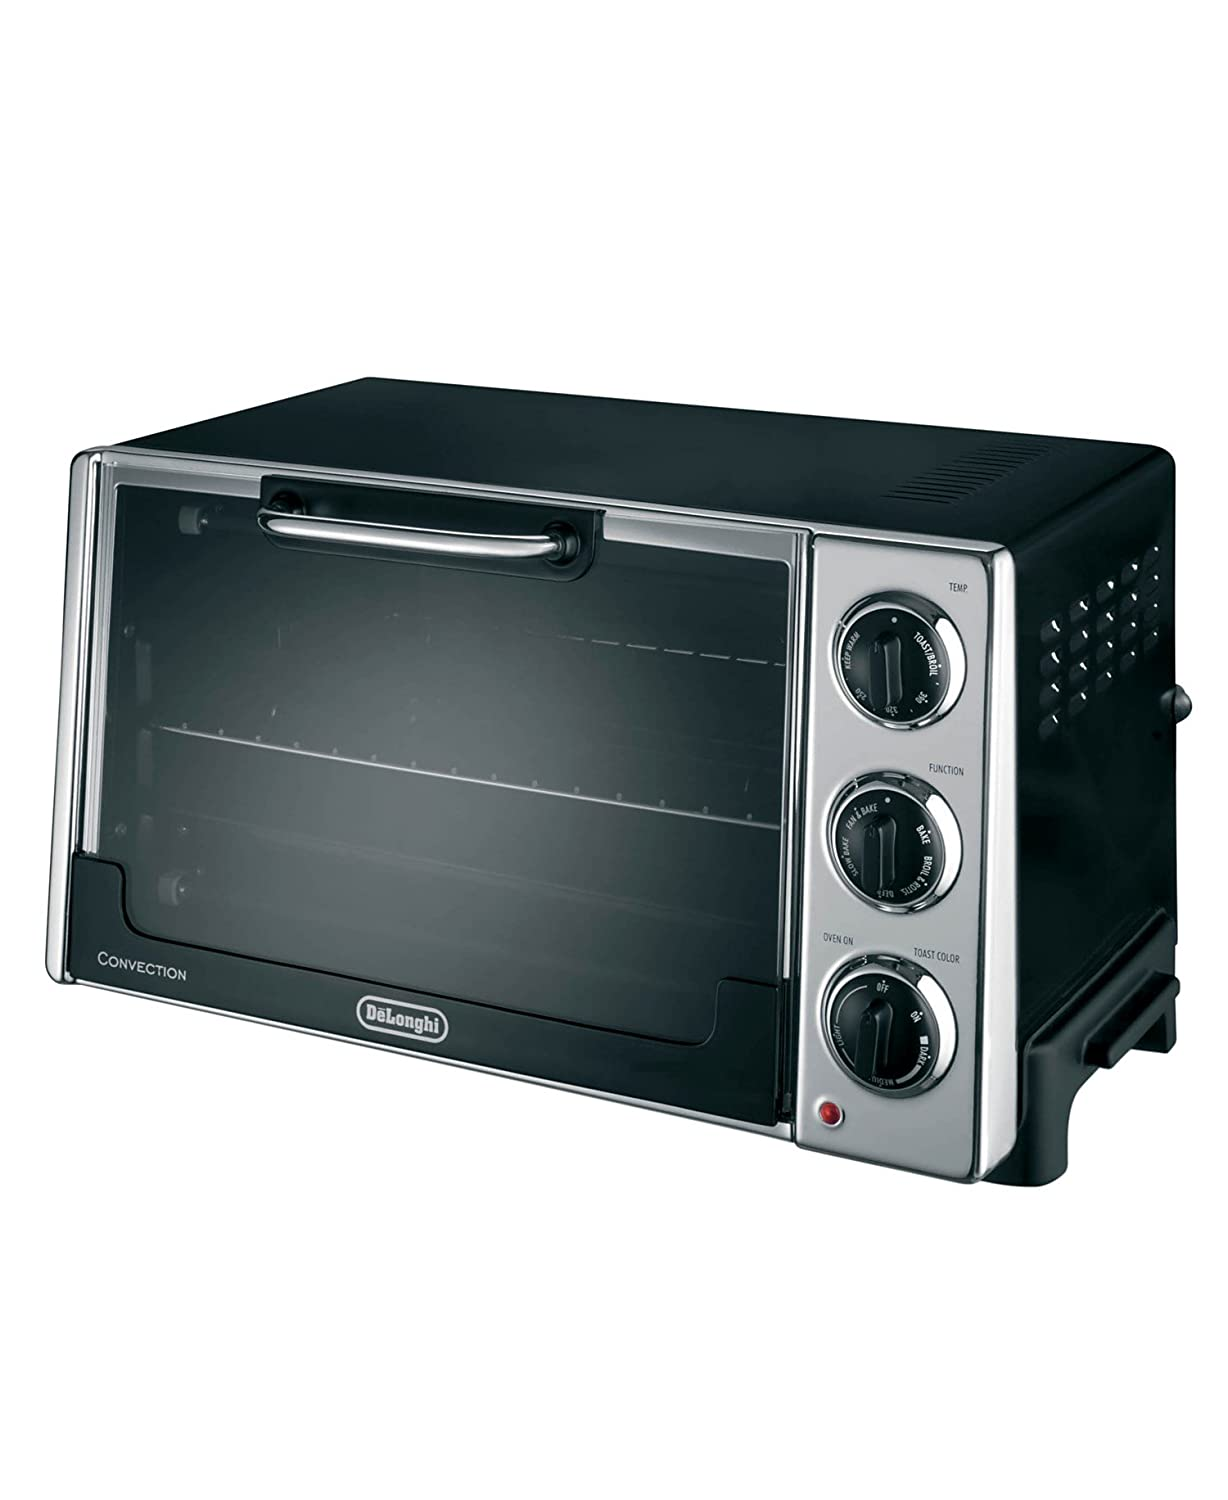 stackable toaster commercial volts button ovens with and push industrial solwave cu search ft large interior microwave